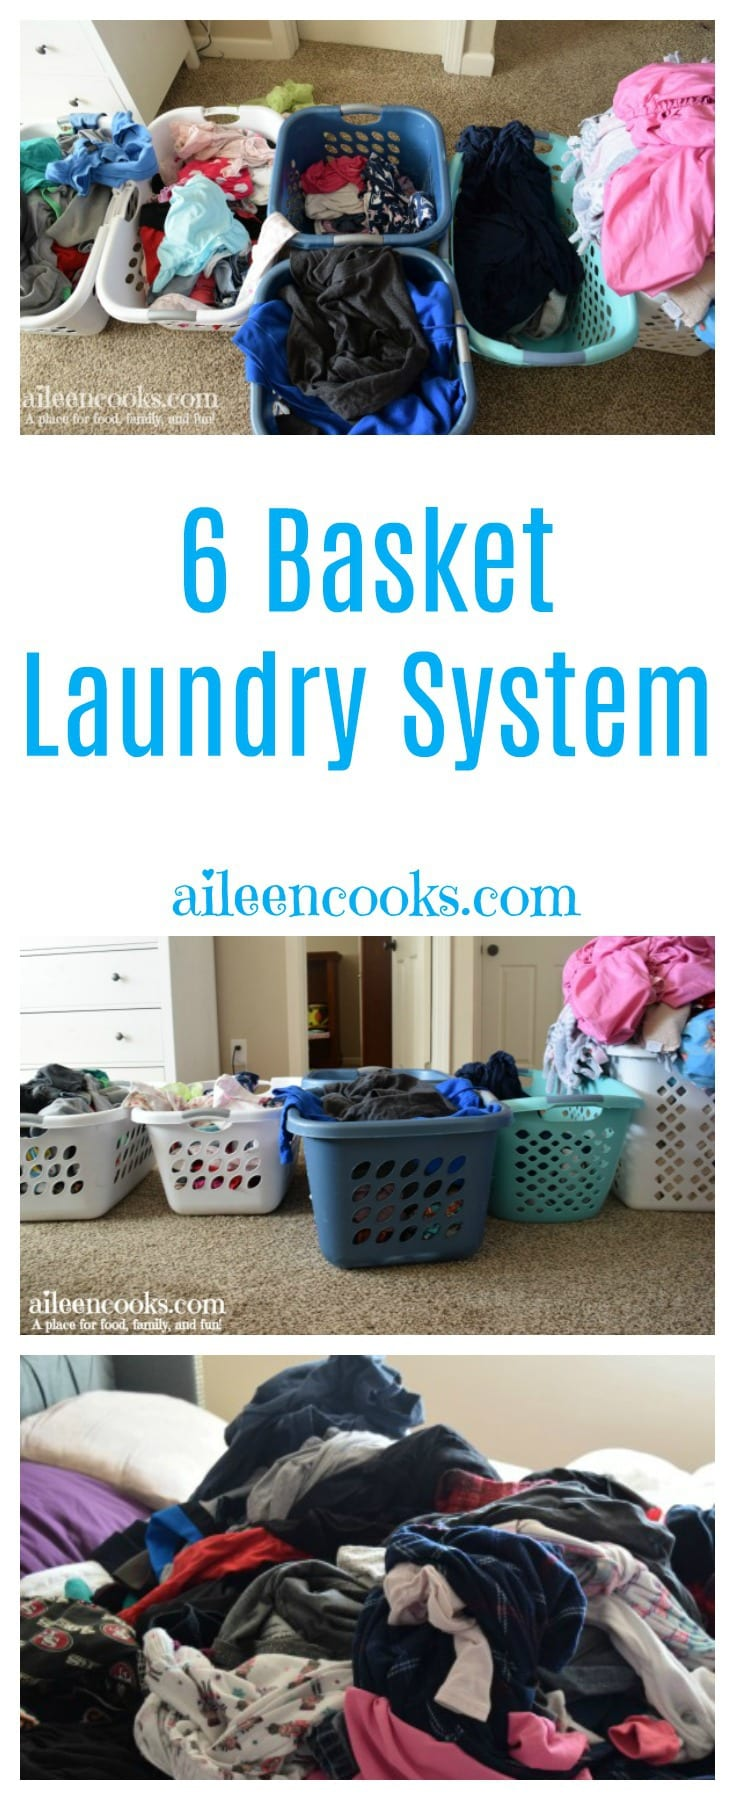 This is how we make laundry work in our house! A 6 basket laundry system that gets the kids to help with the chores!